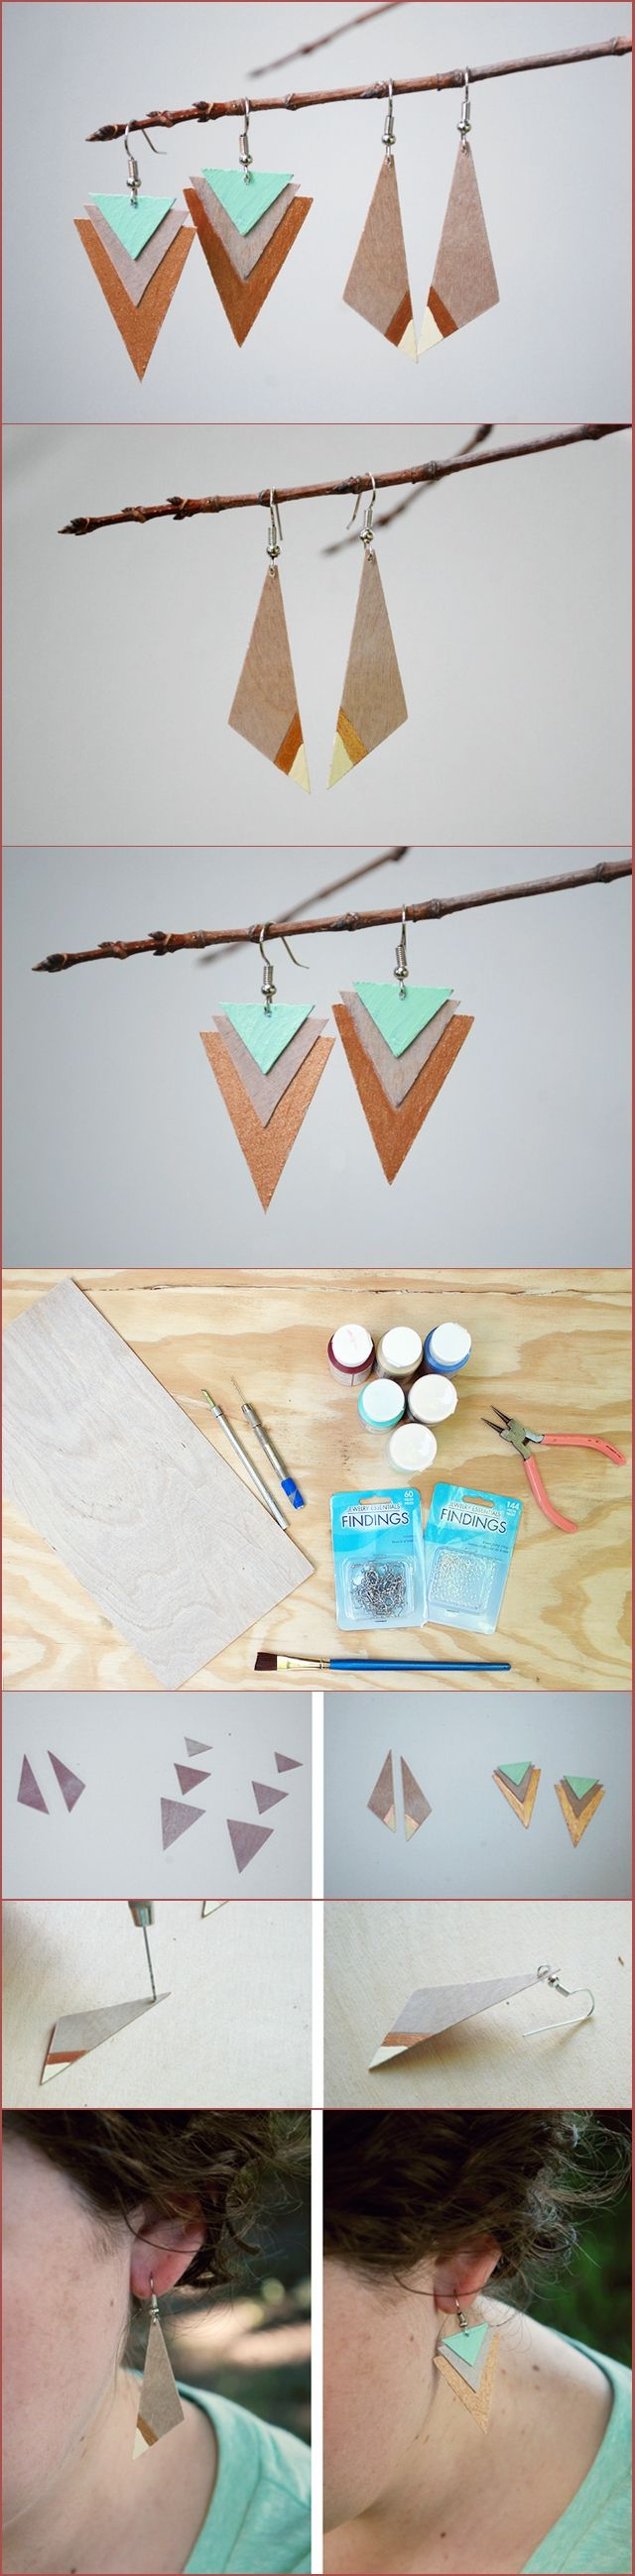 Diy Wood Earrings – Two Ways